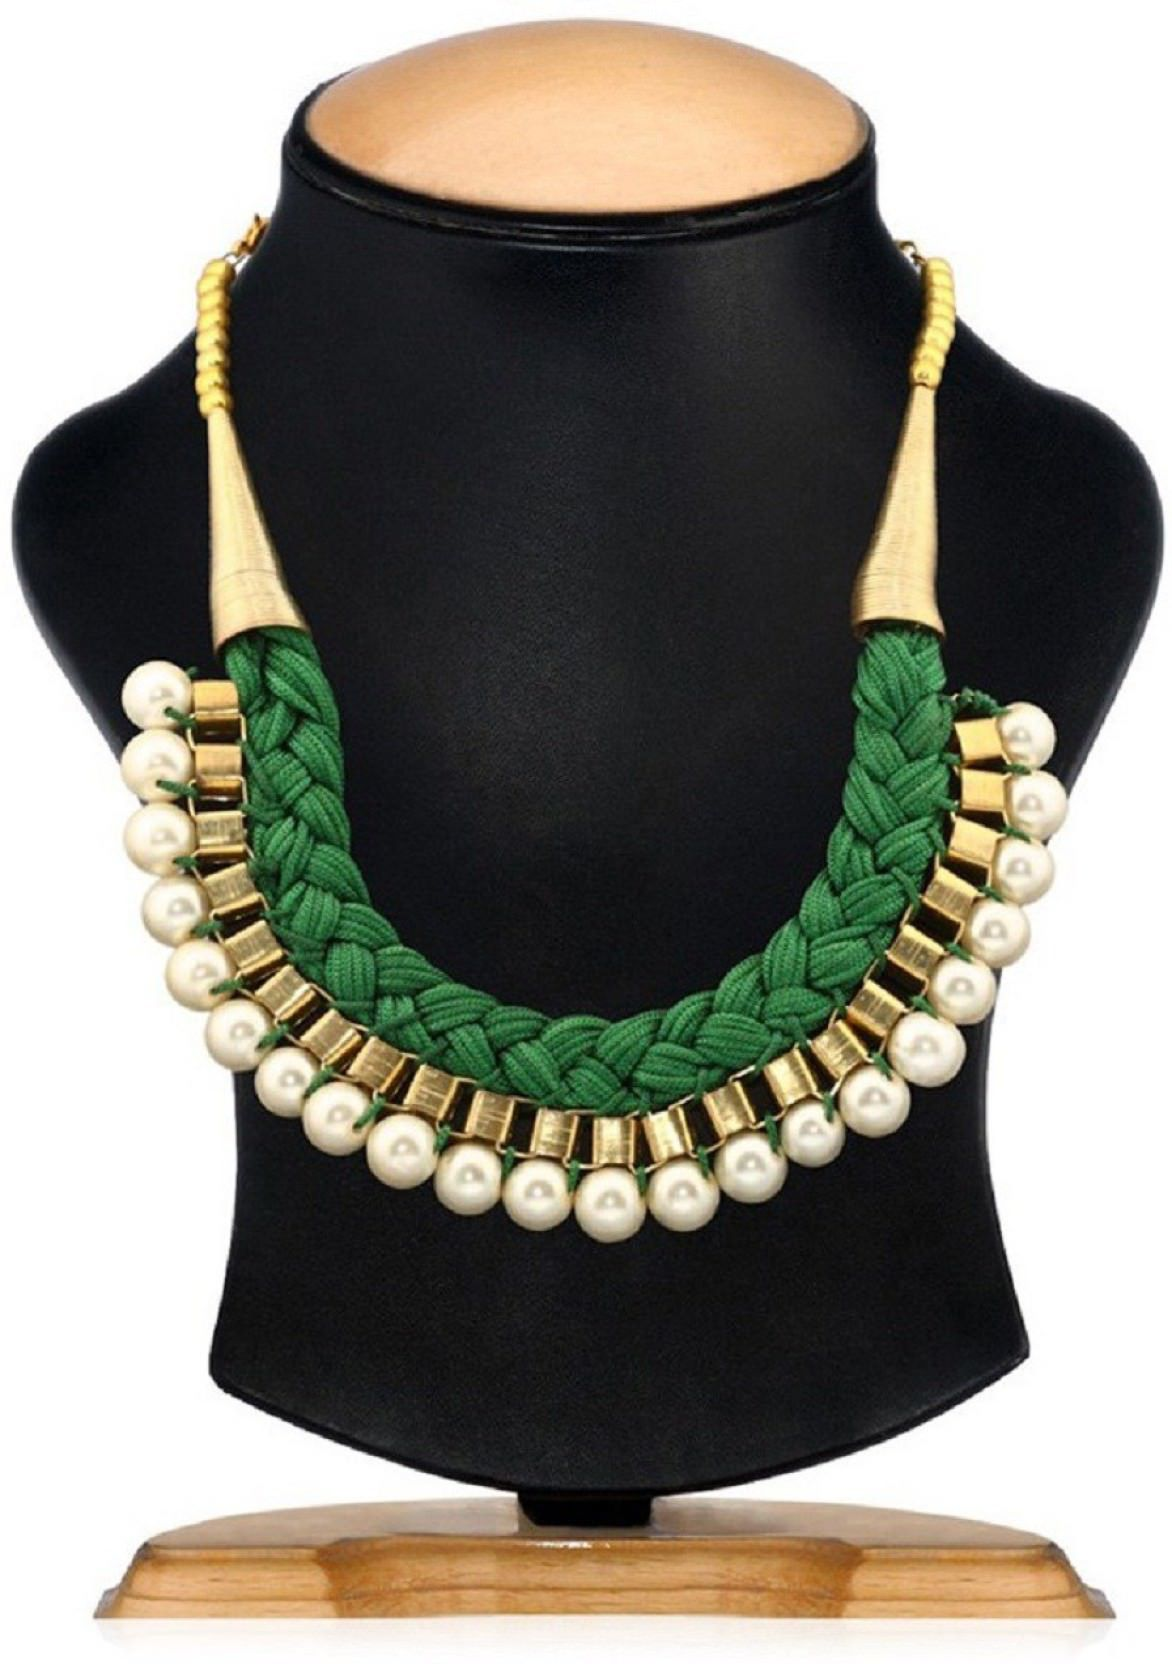 Aabhu Gold Plated Handmade Funky Thread And Pear Beaded Choker Necklace Jewellery Set With Earring For Women And Girls